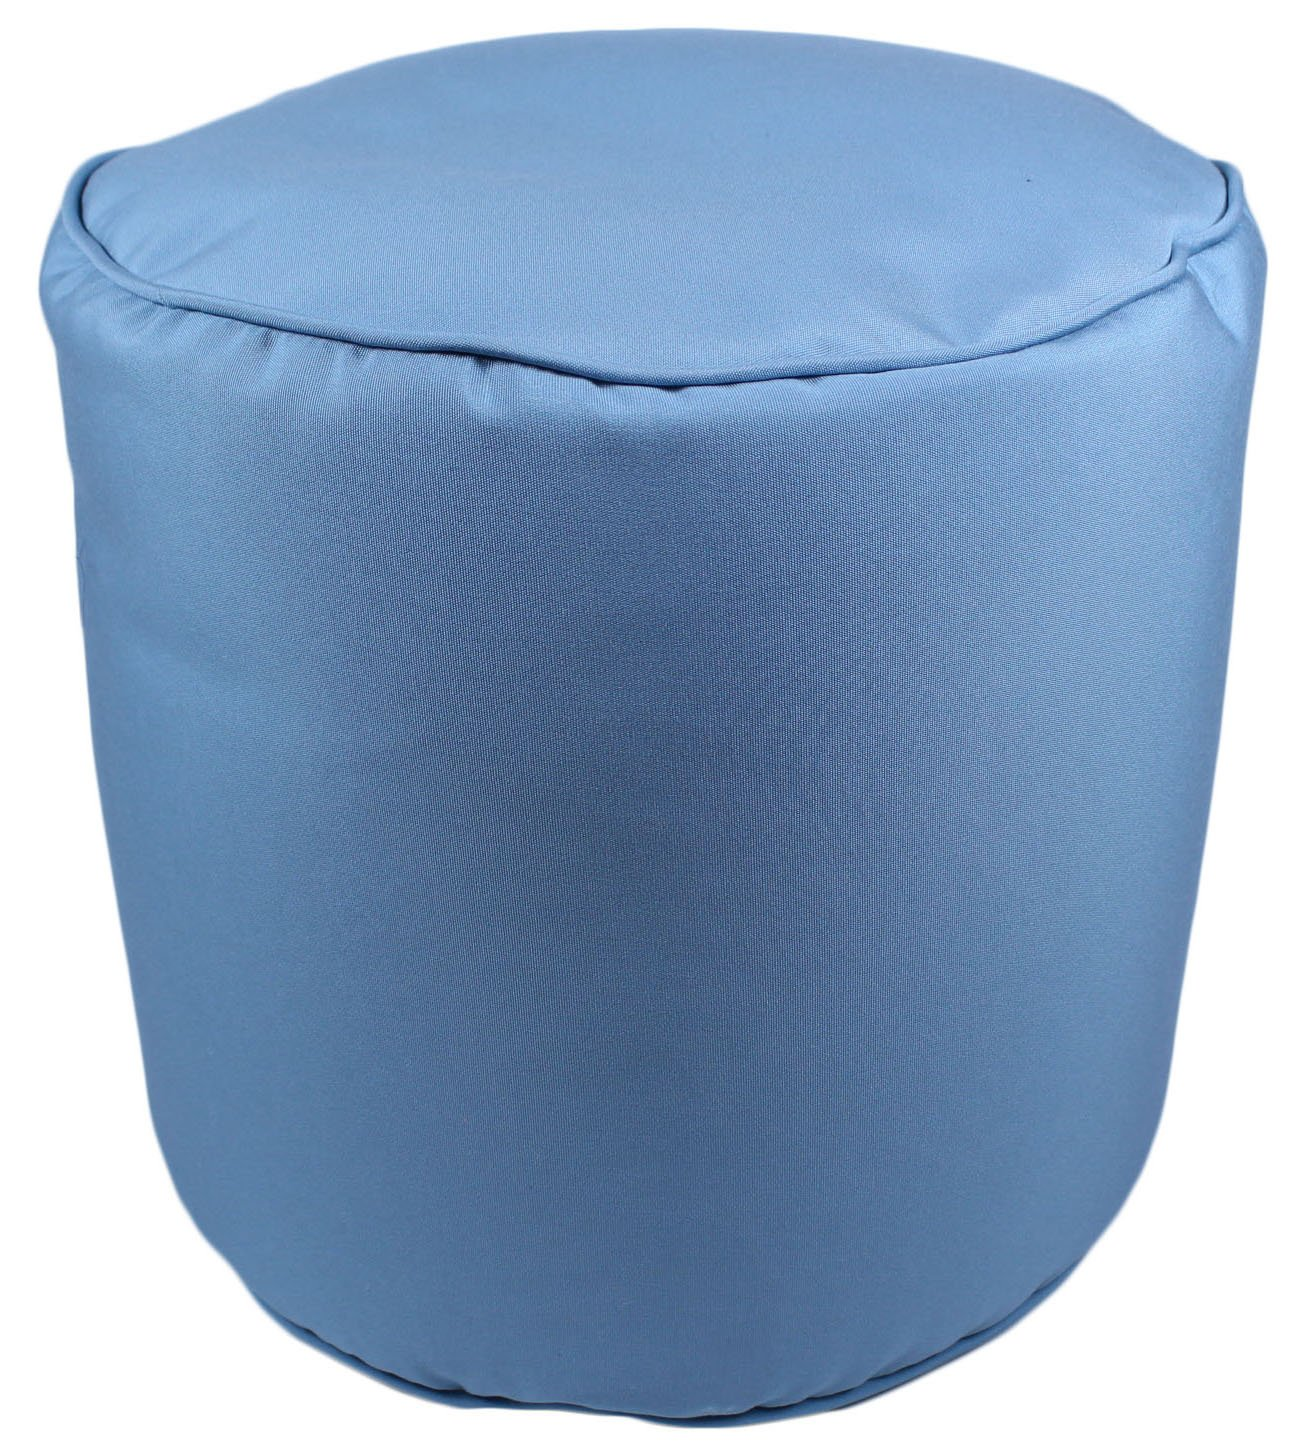 Lava Polyester Ottomans 47290-999 Canvas Mineral Blue Pouf 17X17 Poufs/Outdoor Pouf 17 X 17 X 17 Inches Multicolored